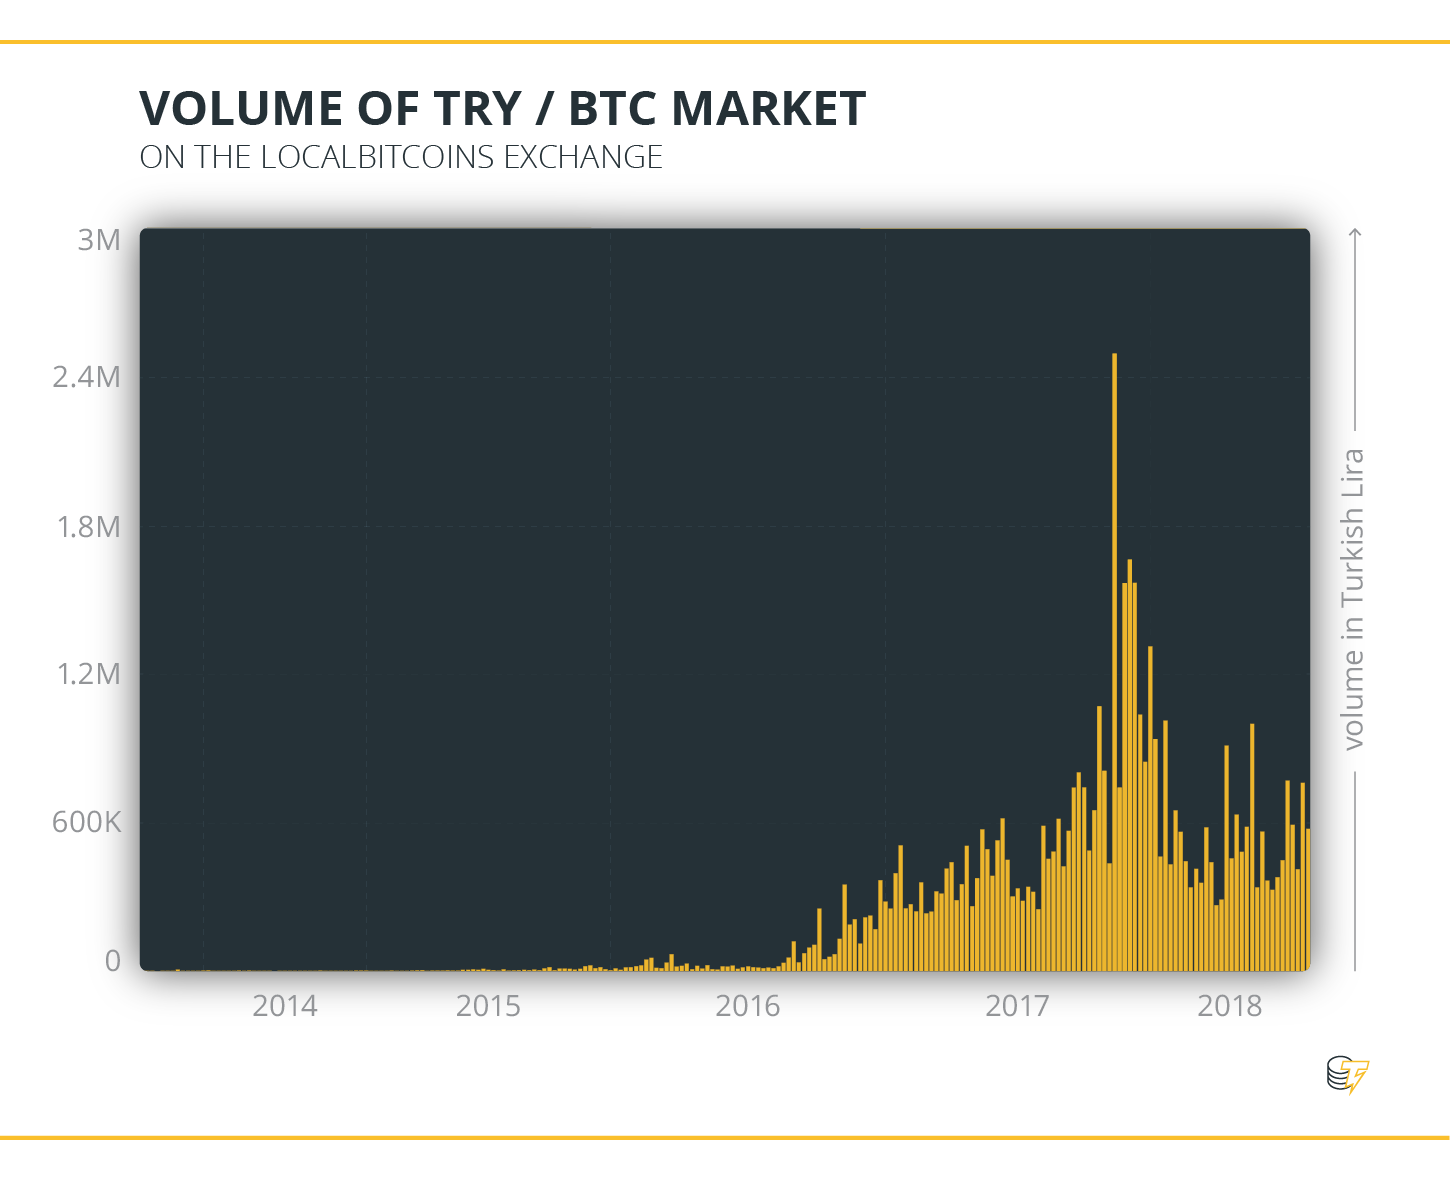 Volume of TRY & BTC Market